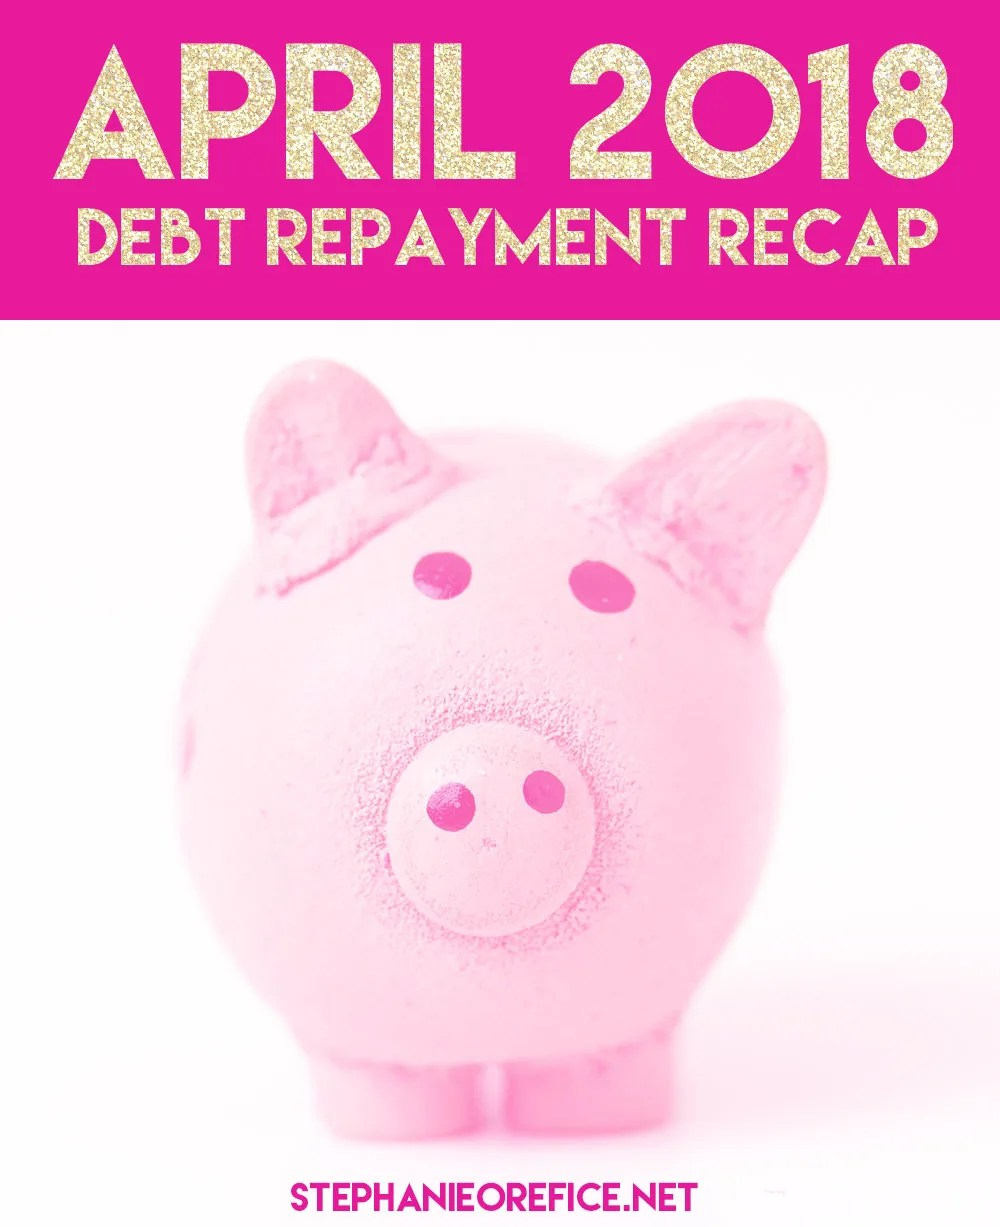 April 2018 Debt Repayment Recap